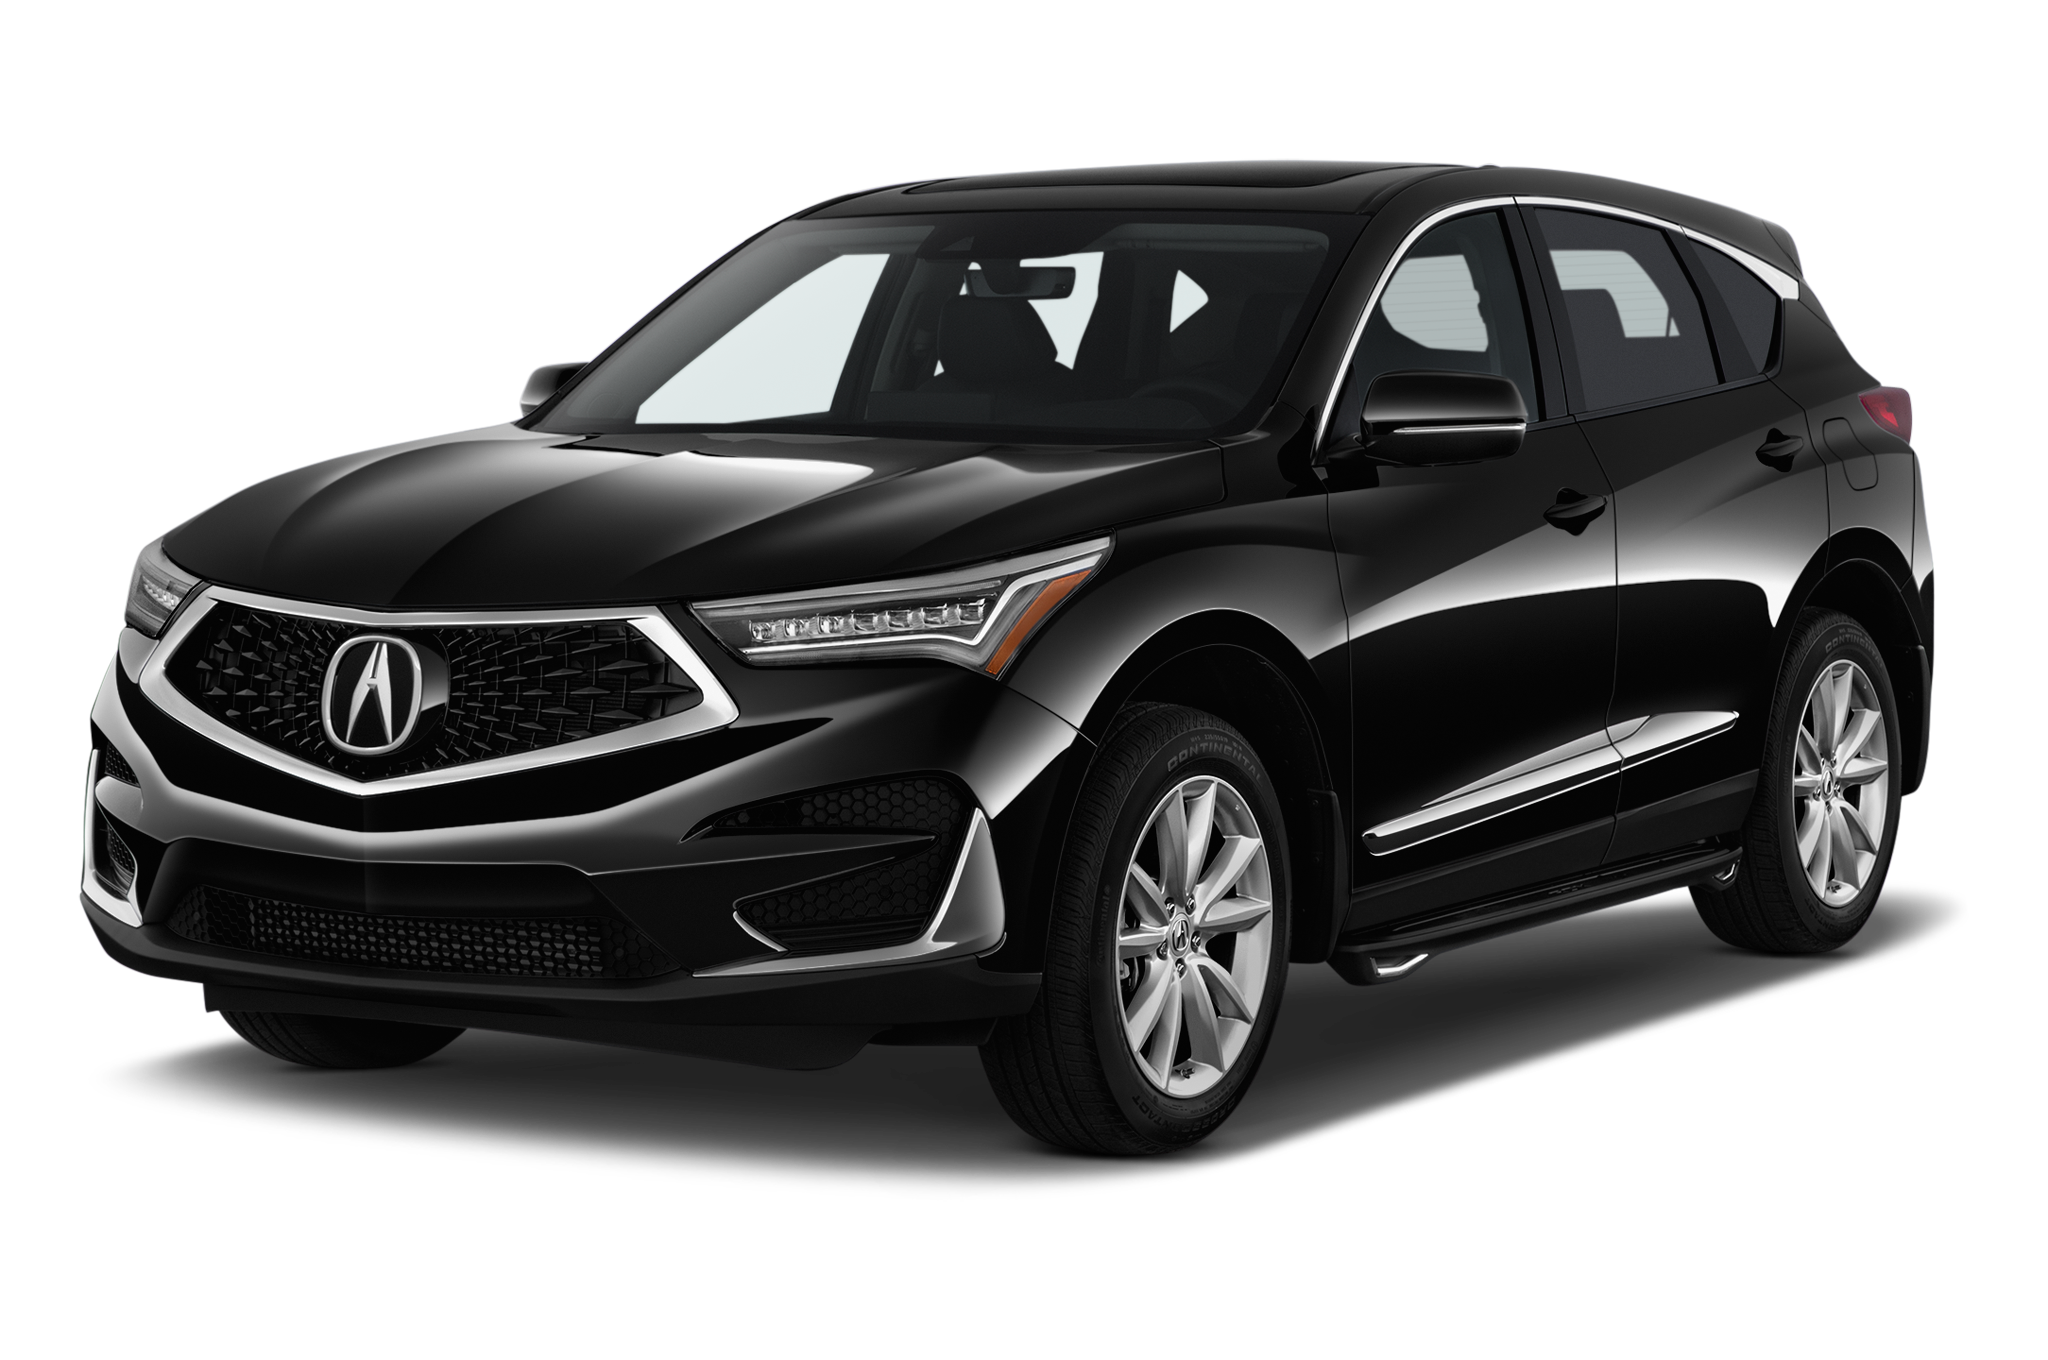 Acura MDX Hybrid Reviews: Research New & Used Models